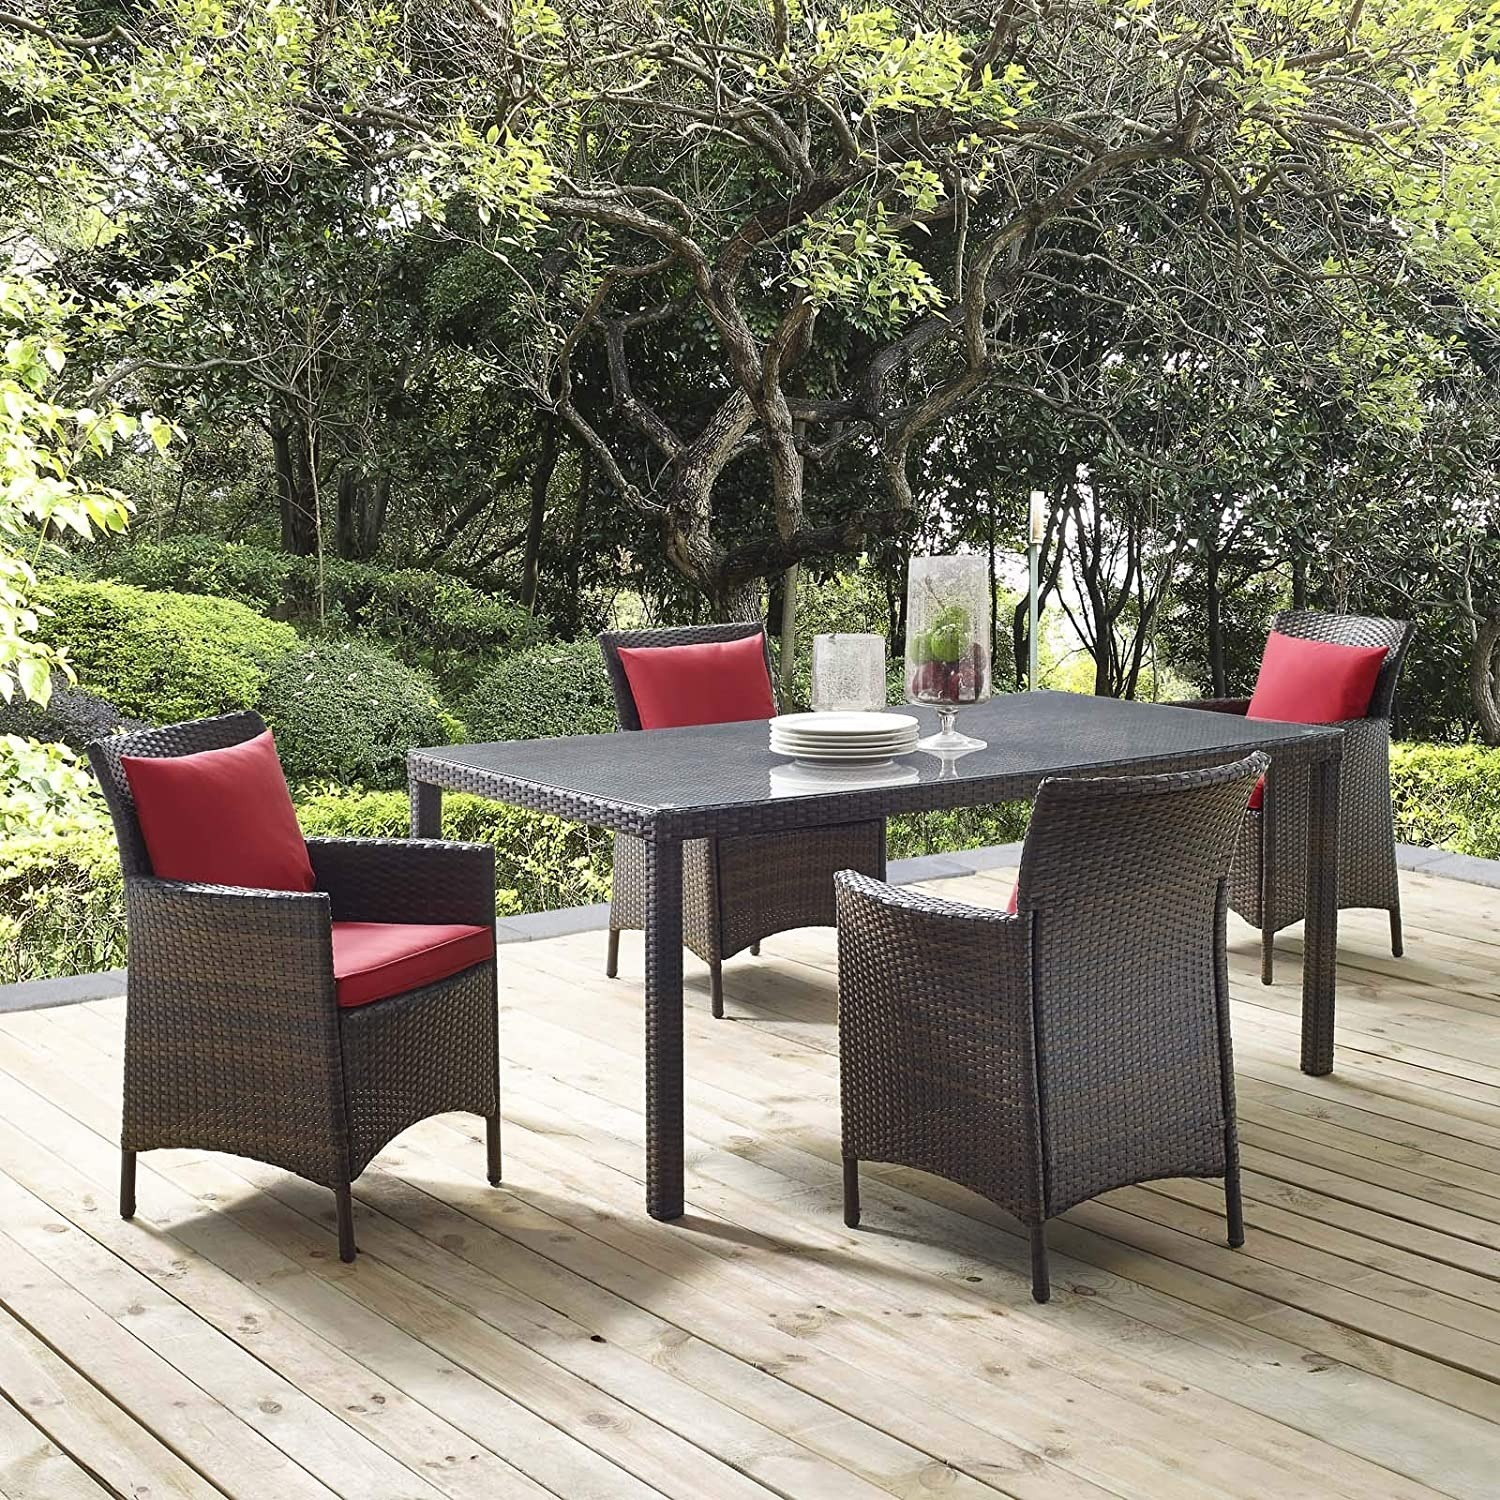 Modern 5-Piece Patio Dining Set In Brown & Red - image-6